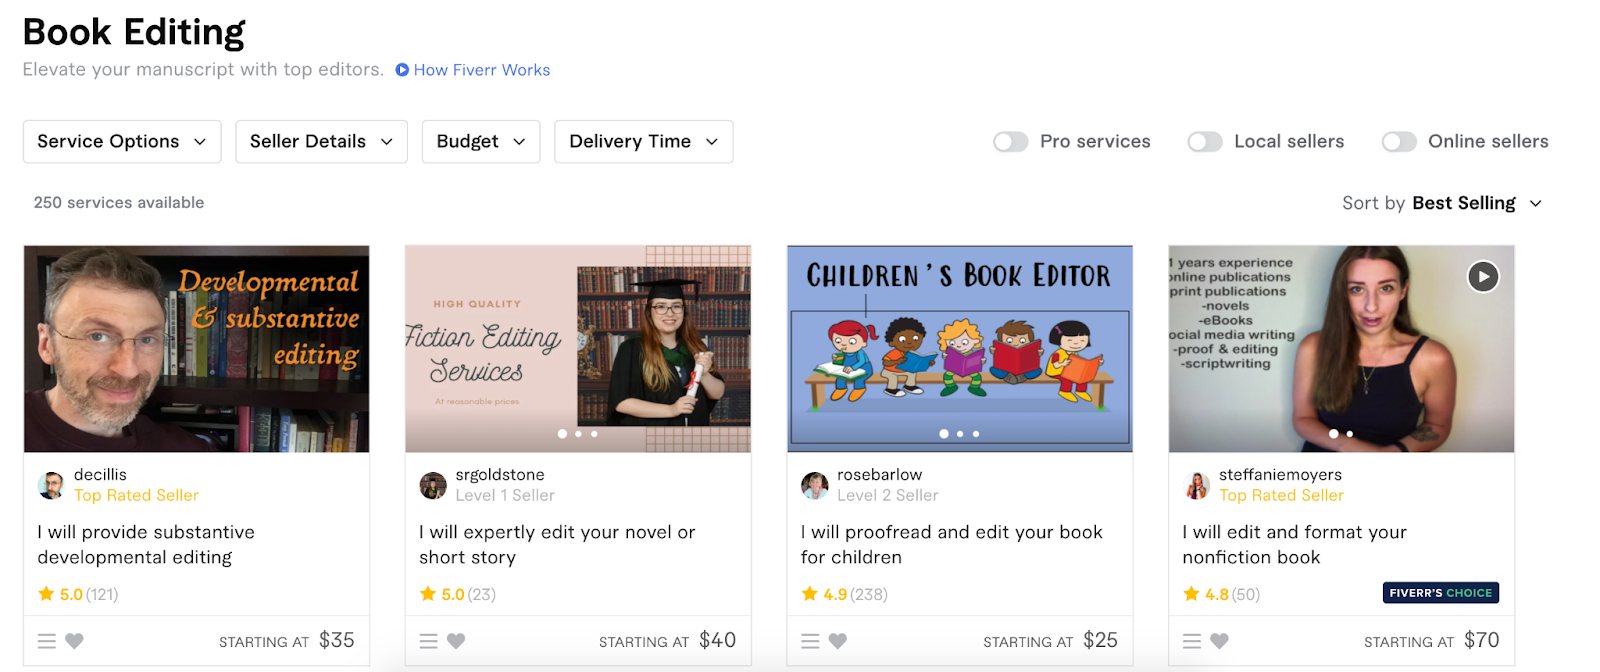 Sorting Fiverr listings by Service Options